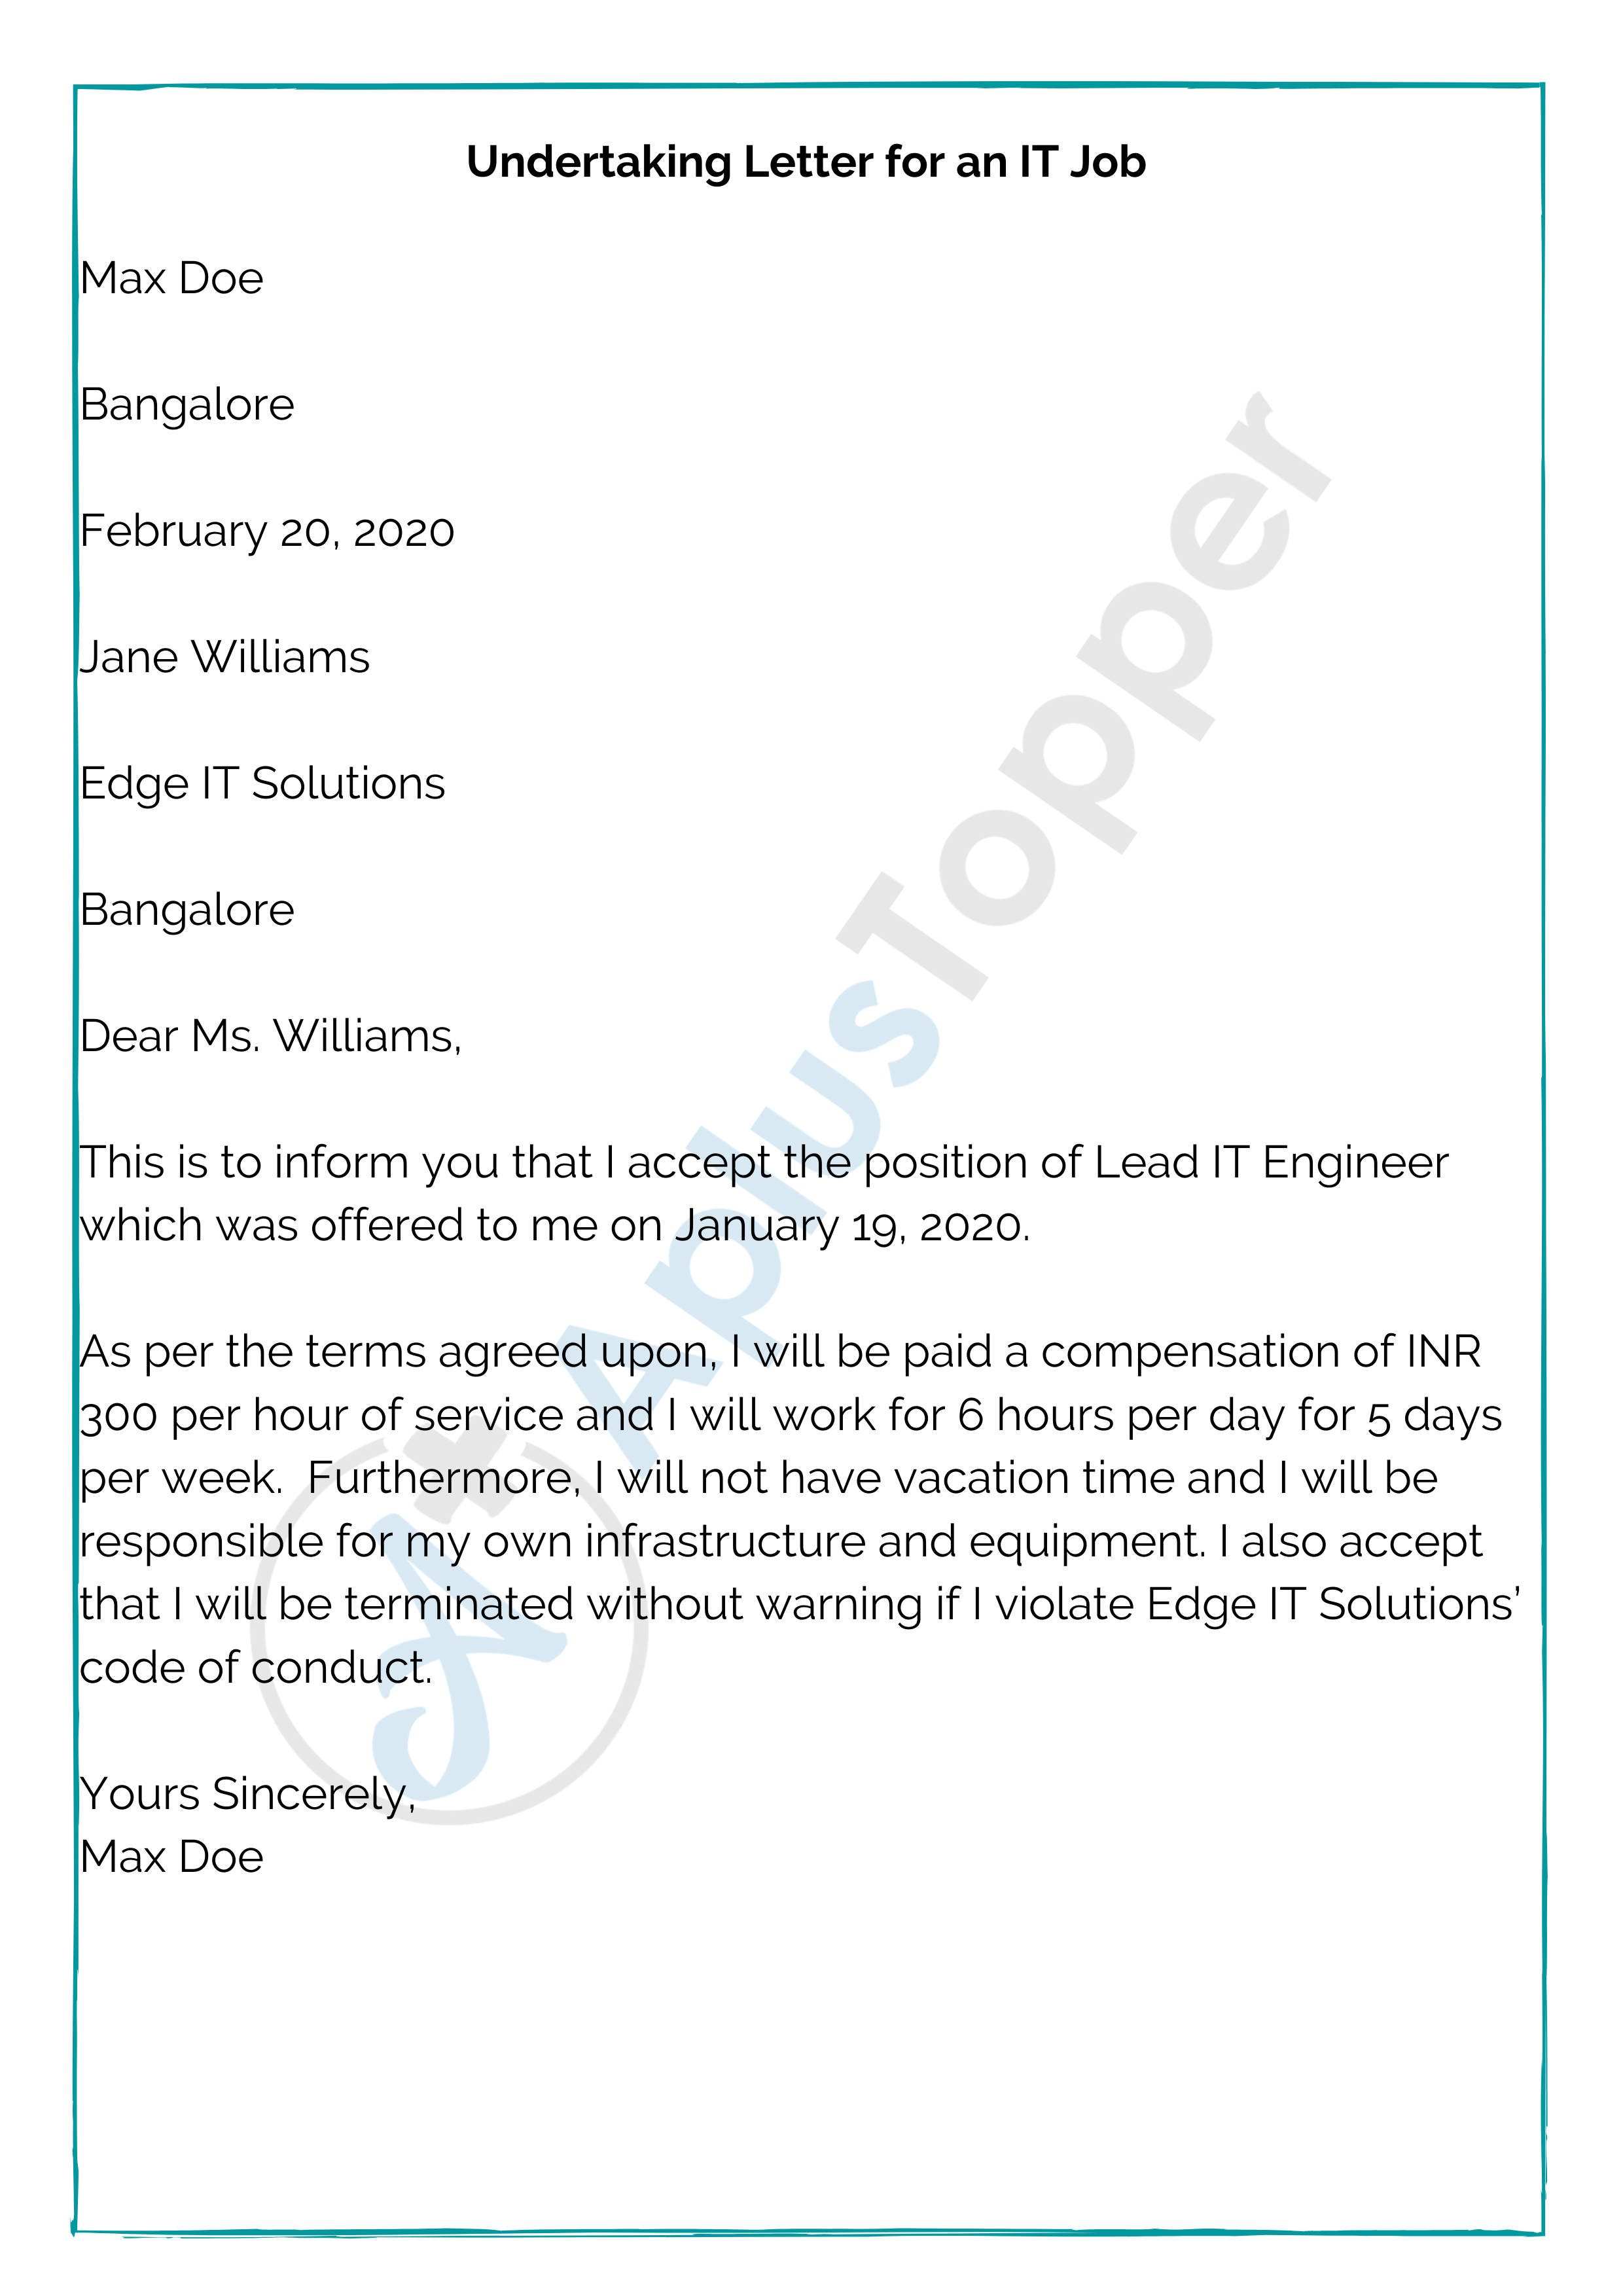 Undertaking Letter for an IT Job